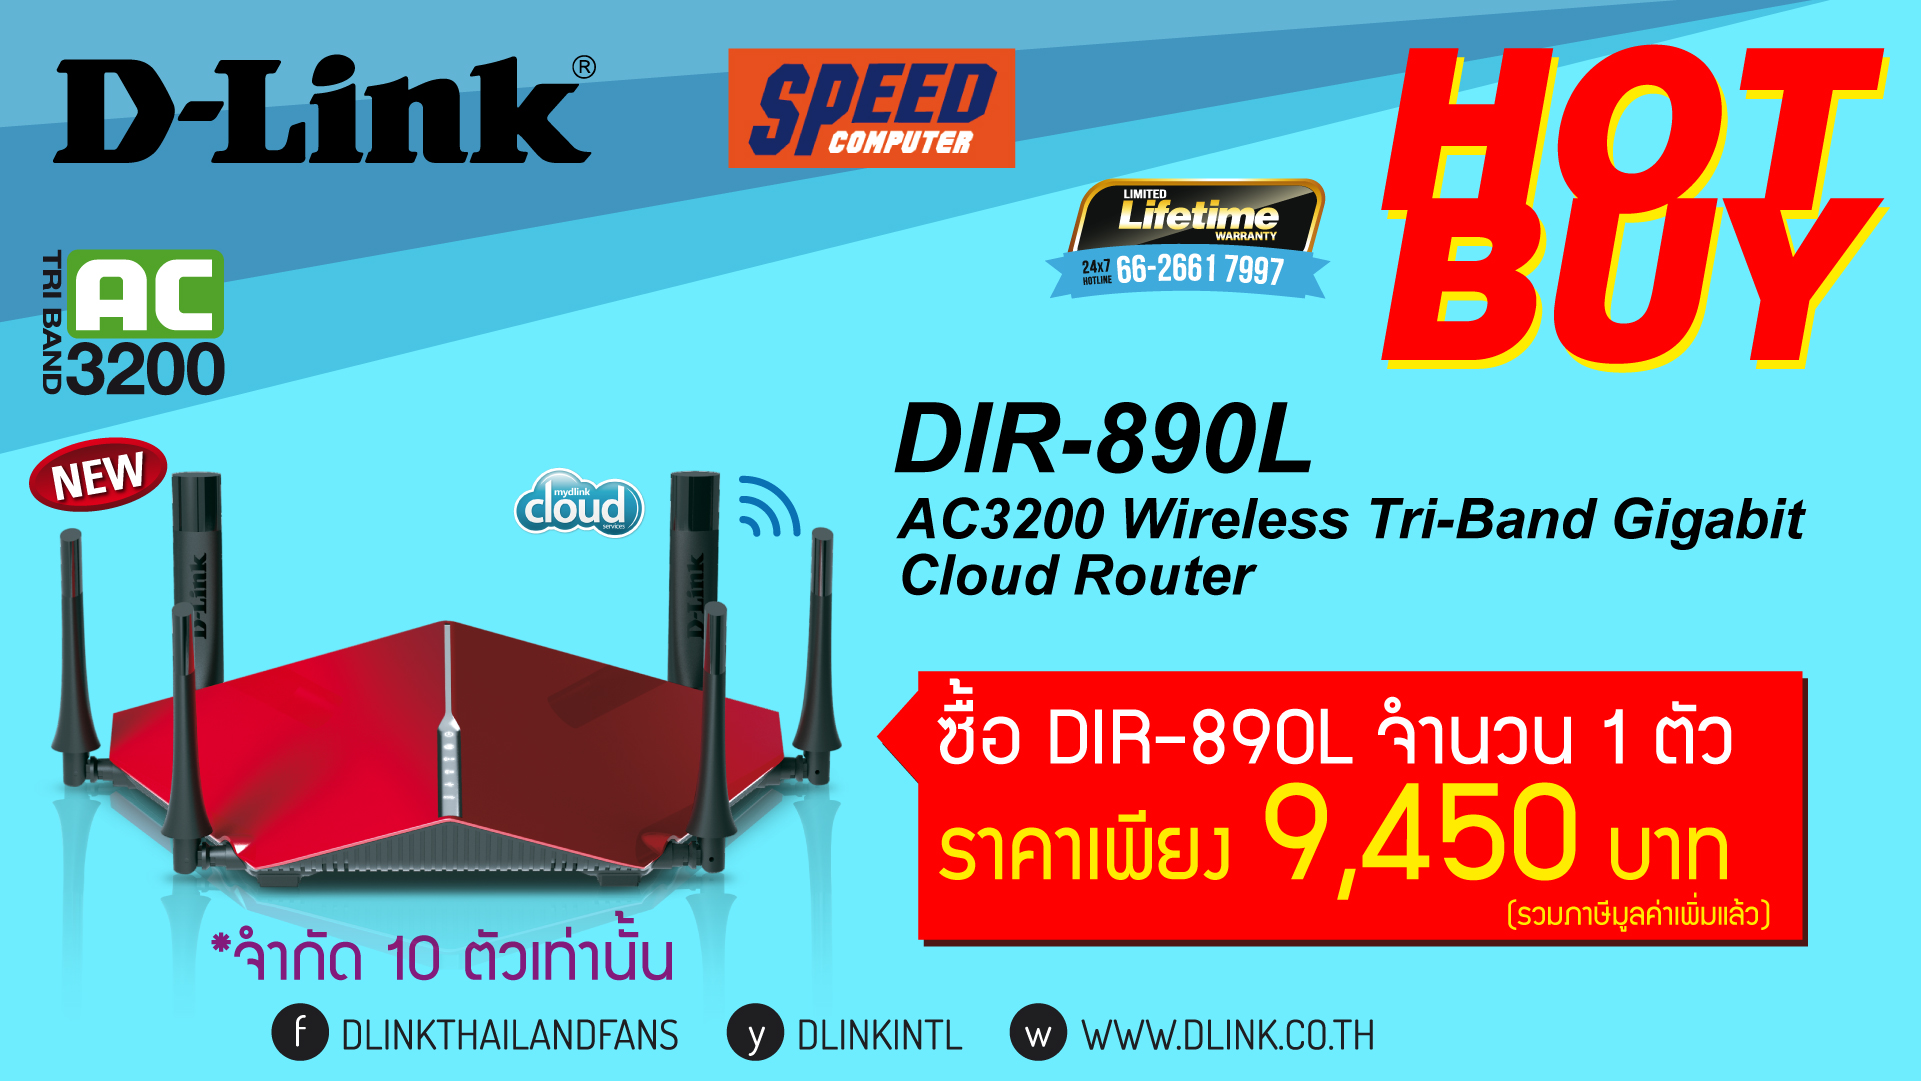 D-Link-Commart-Screen-for-Speed-March-16-07